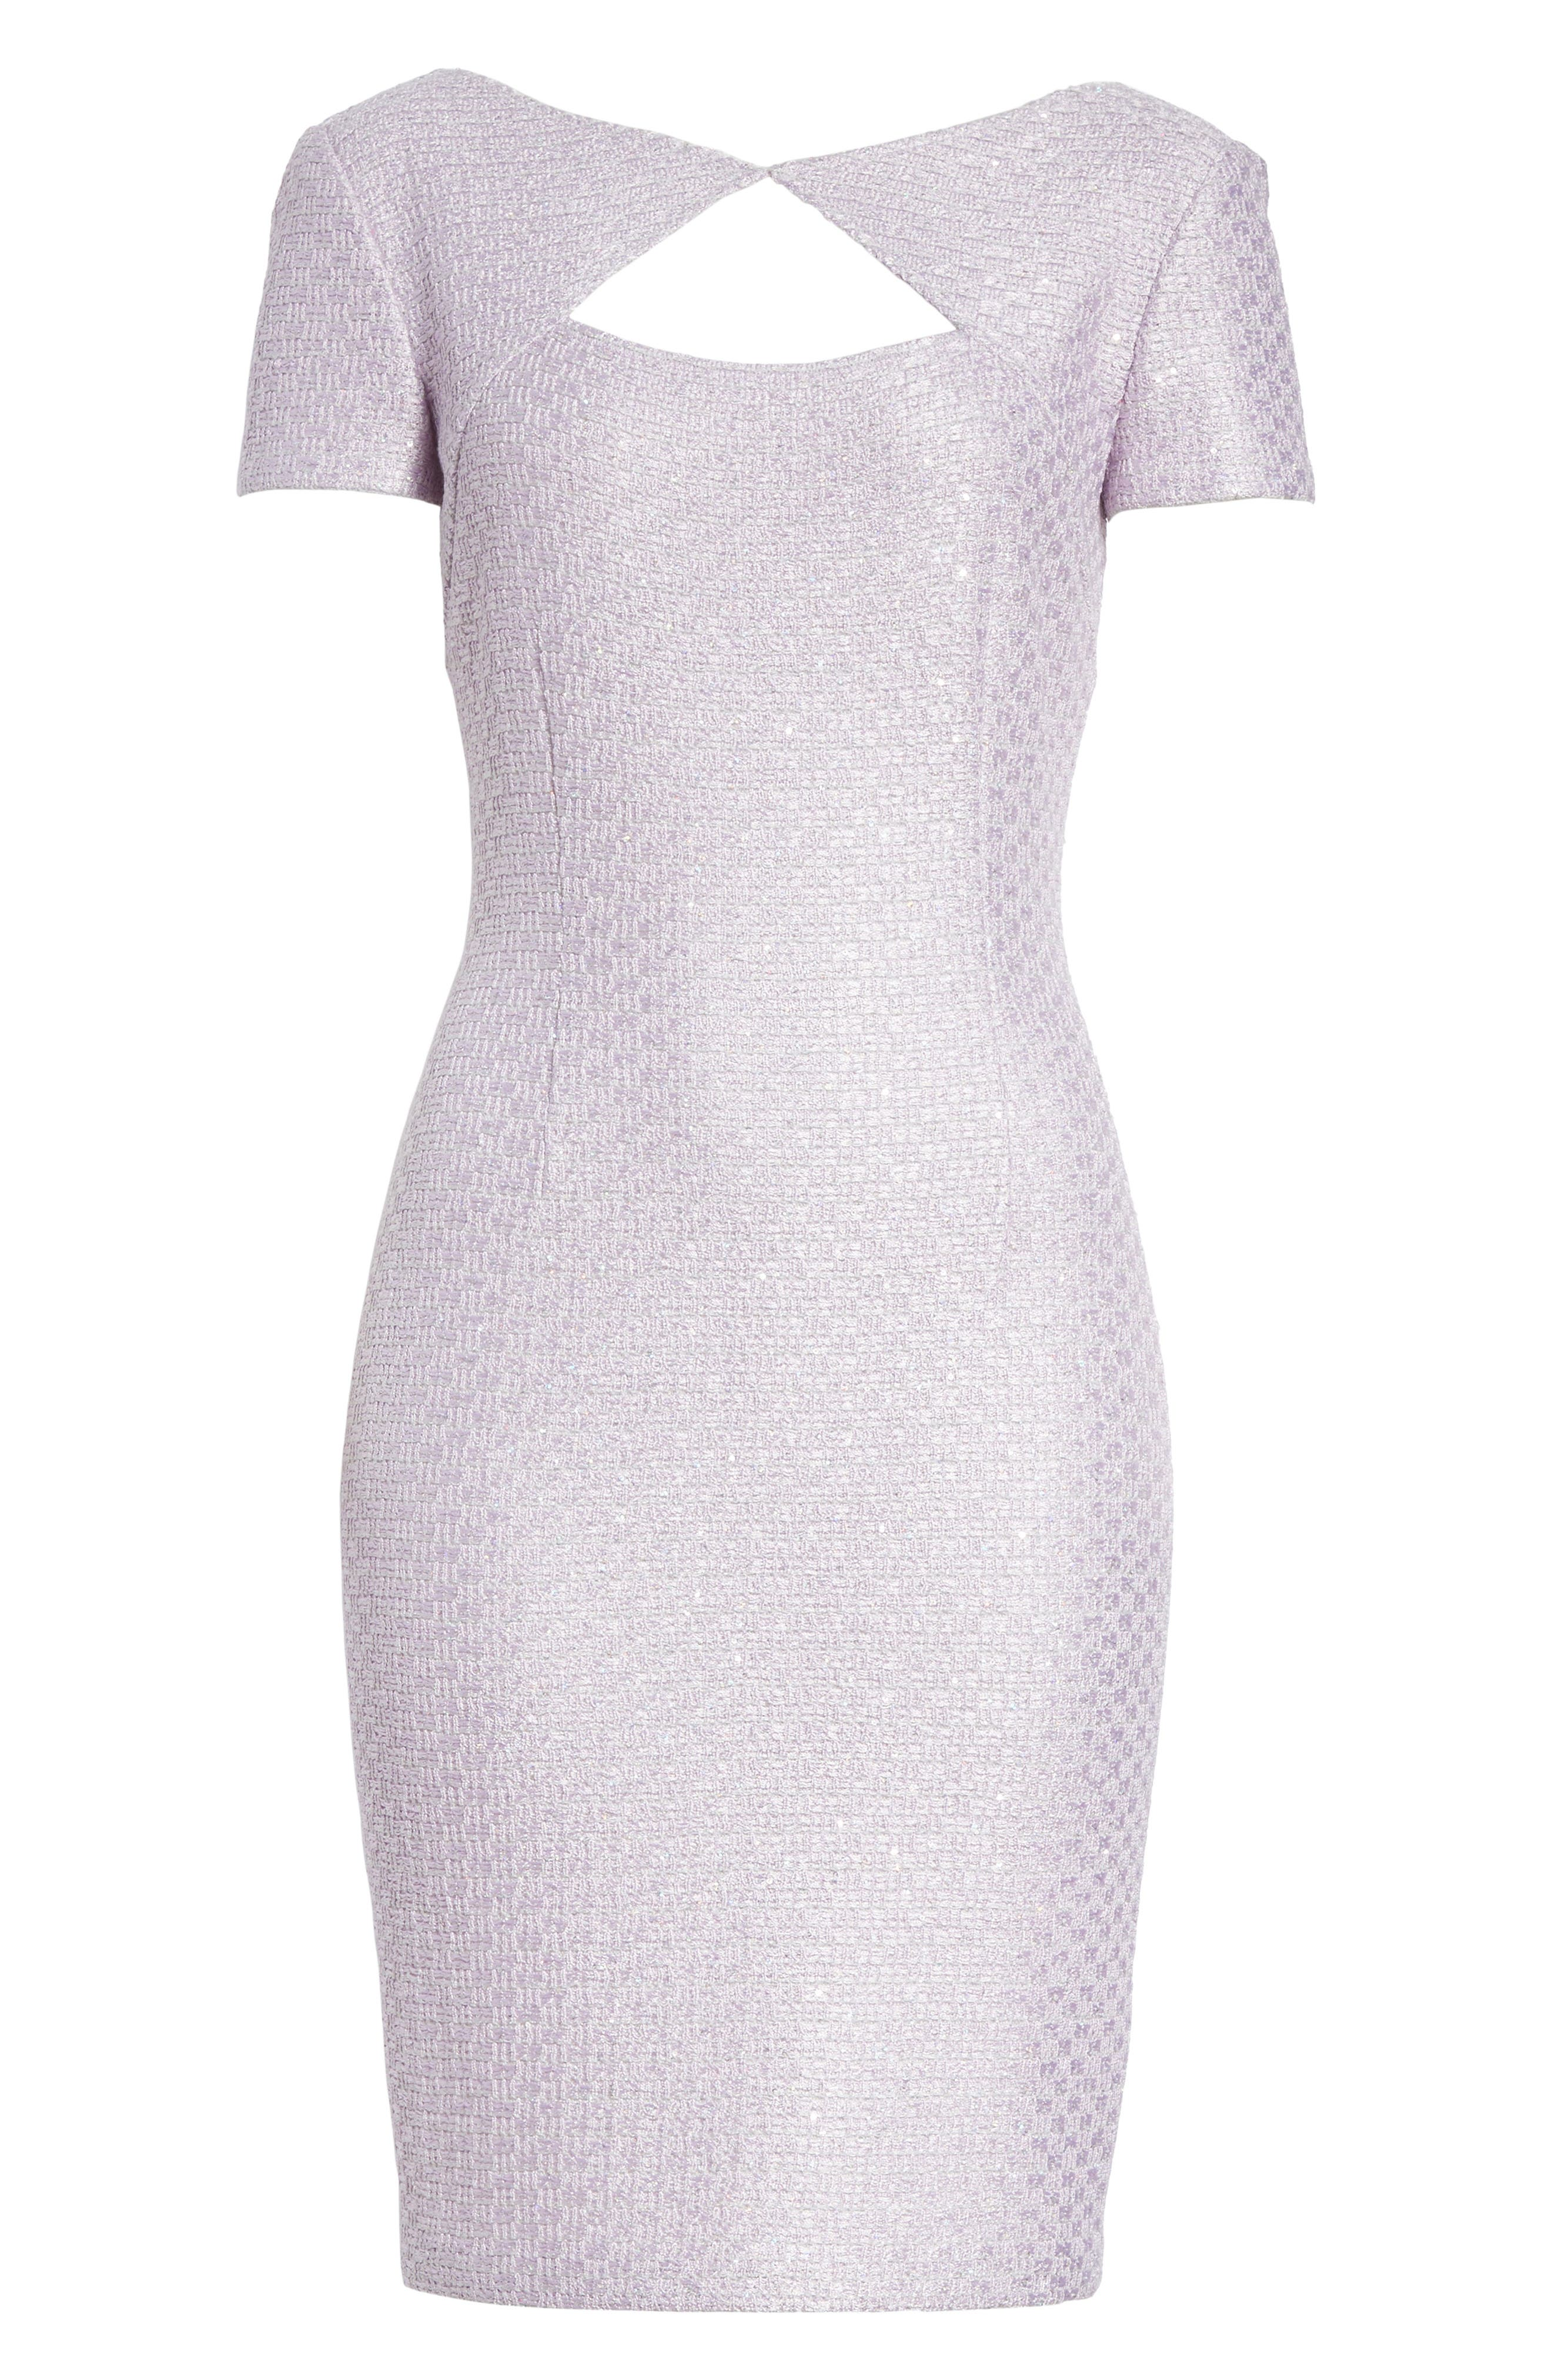 Hansh Sequin Knit Cutout Dress,                             Alternate thumbnail 6, color,                             530